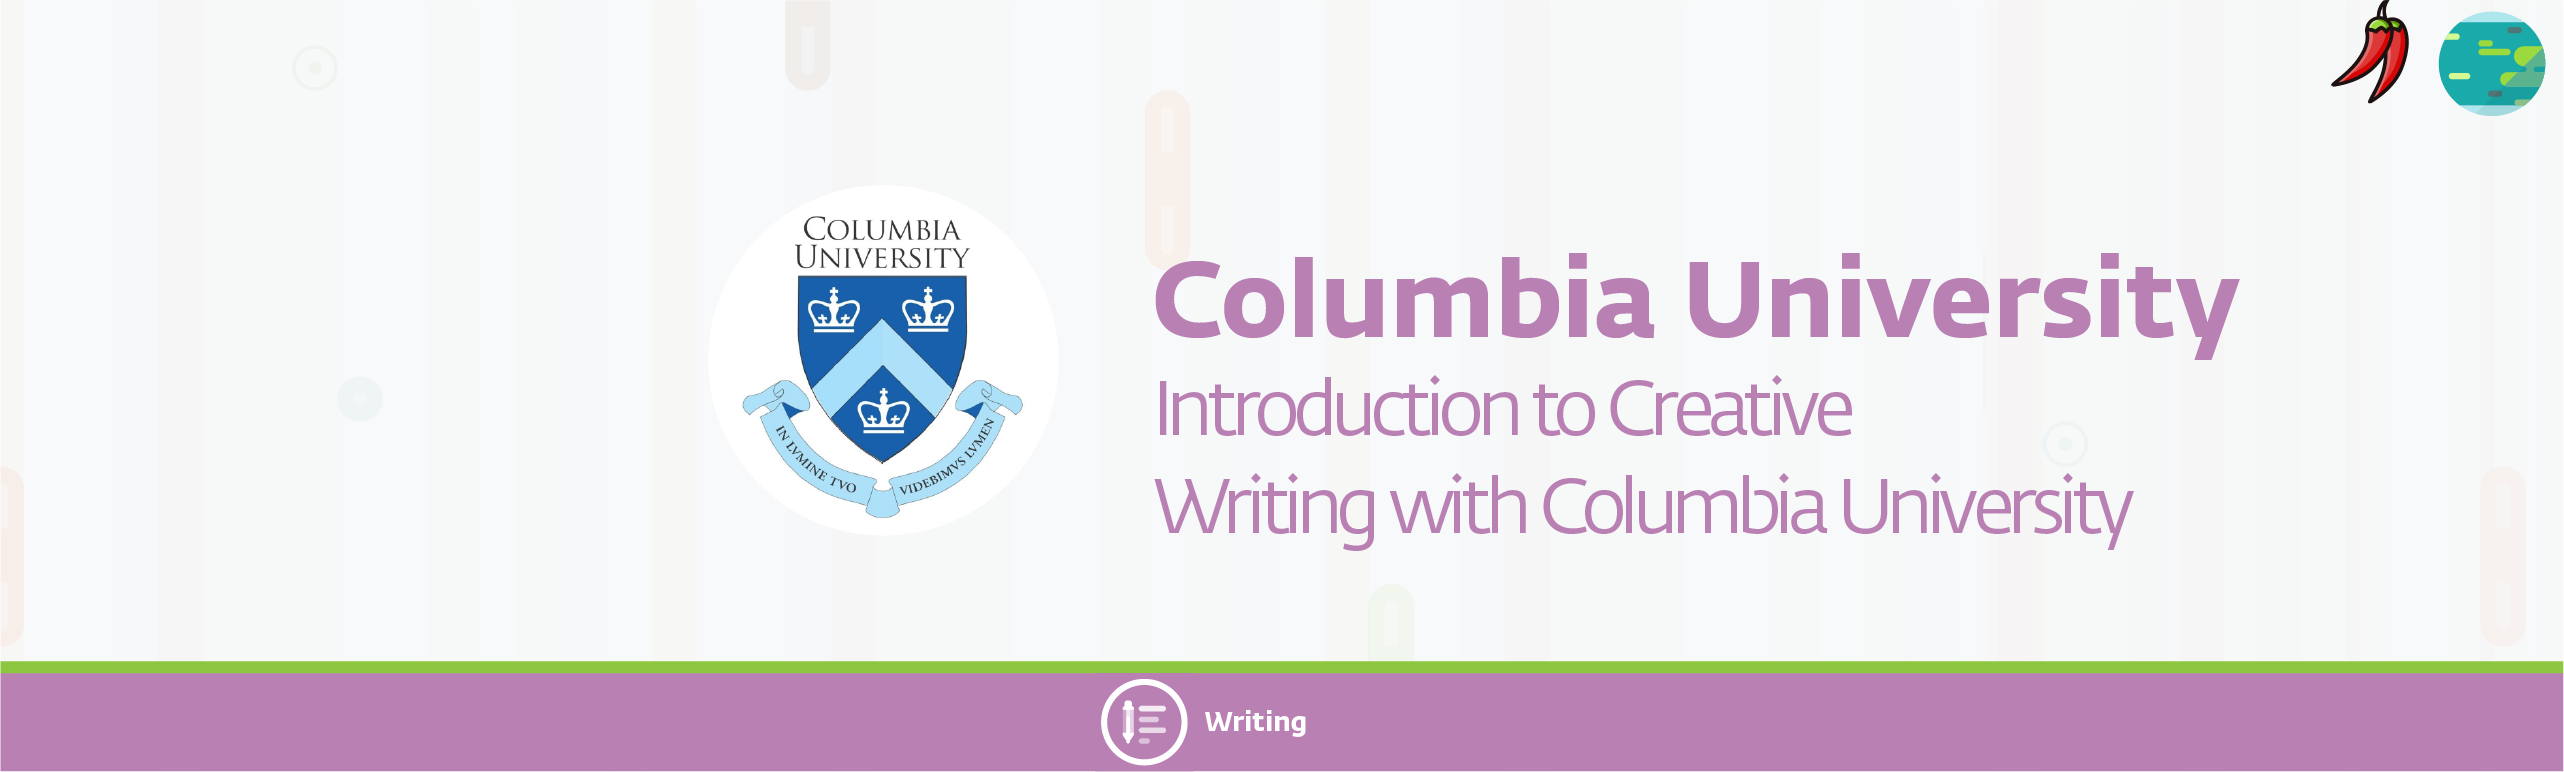 columbia 2 37 - Introduction to Creative Writing with Columbia University